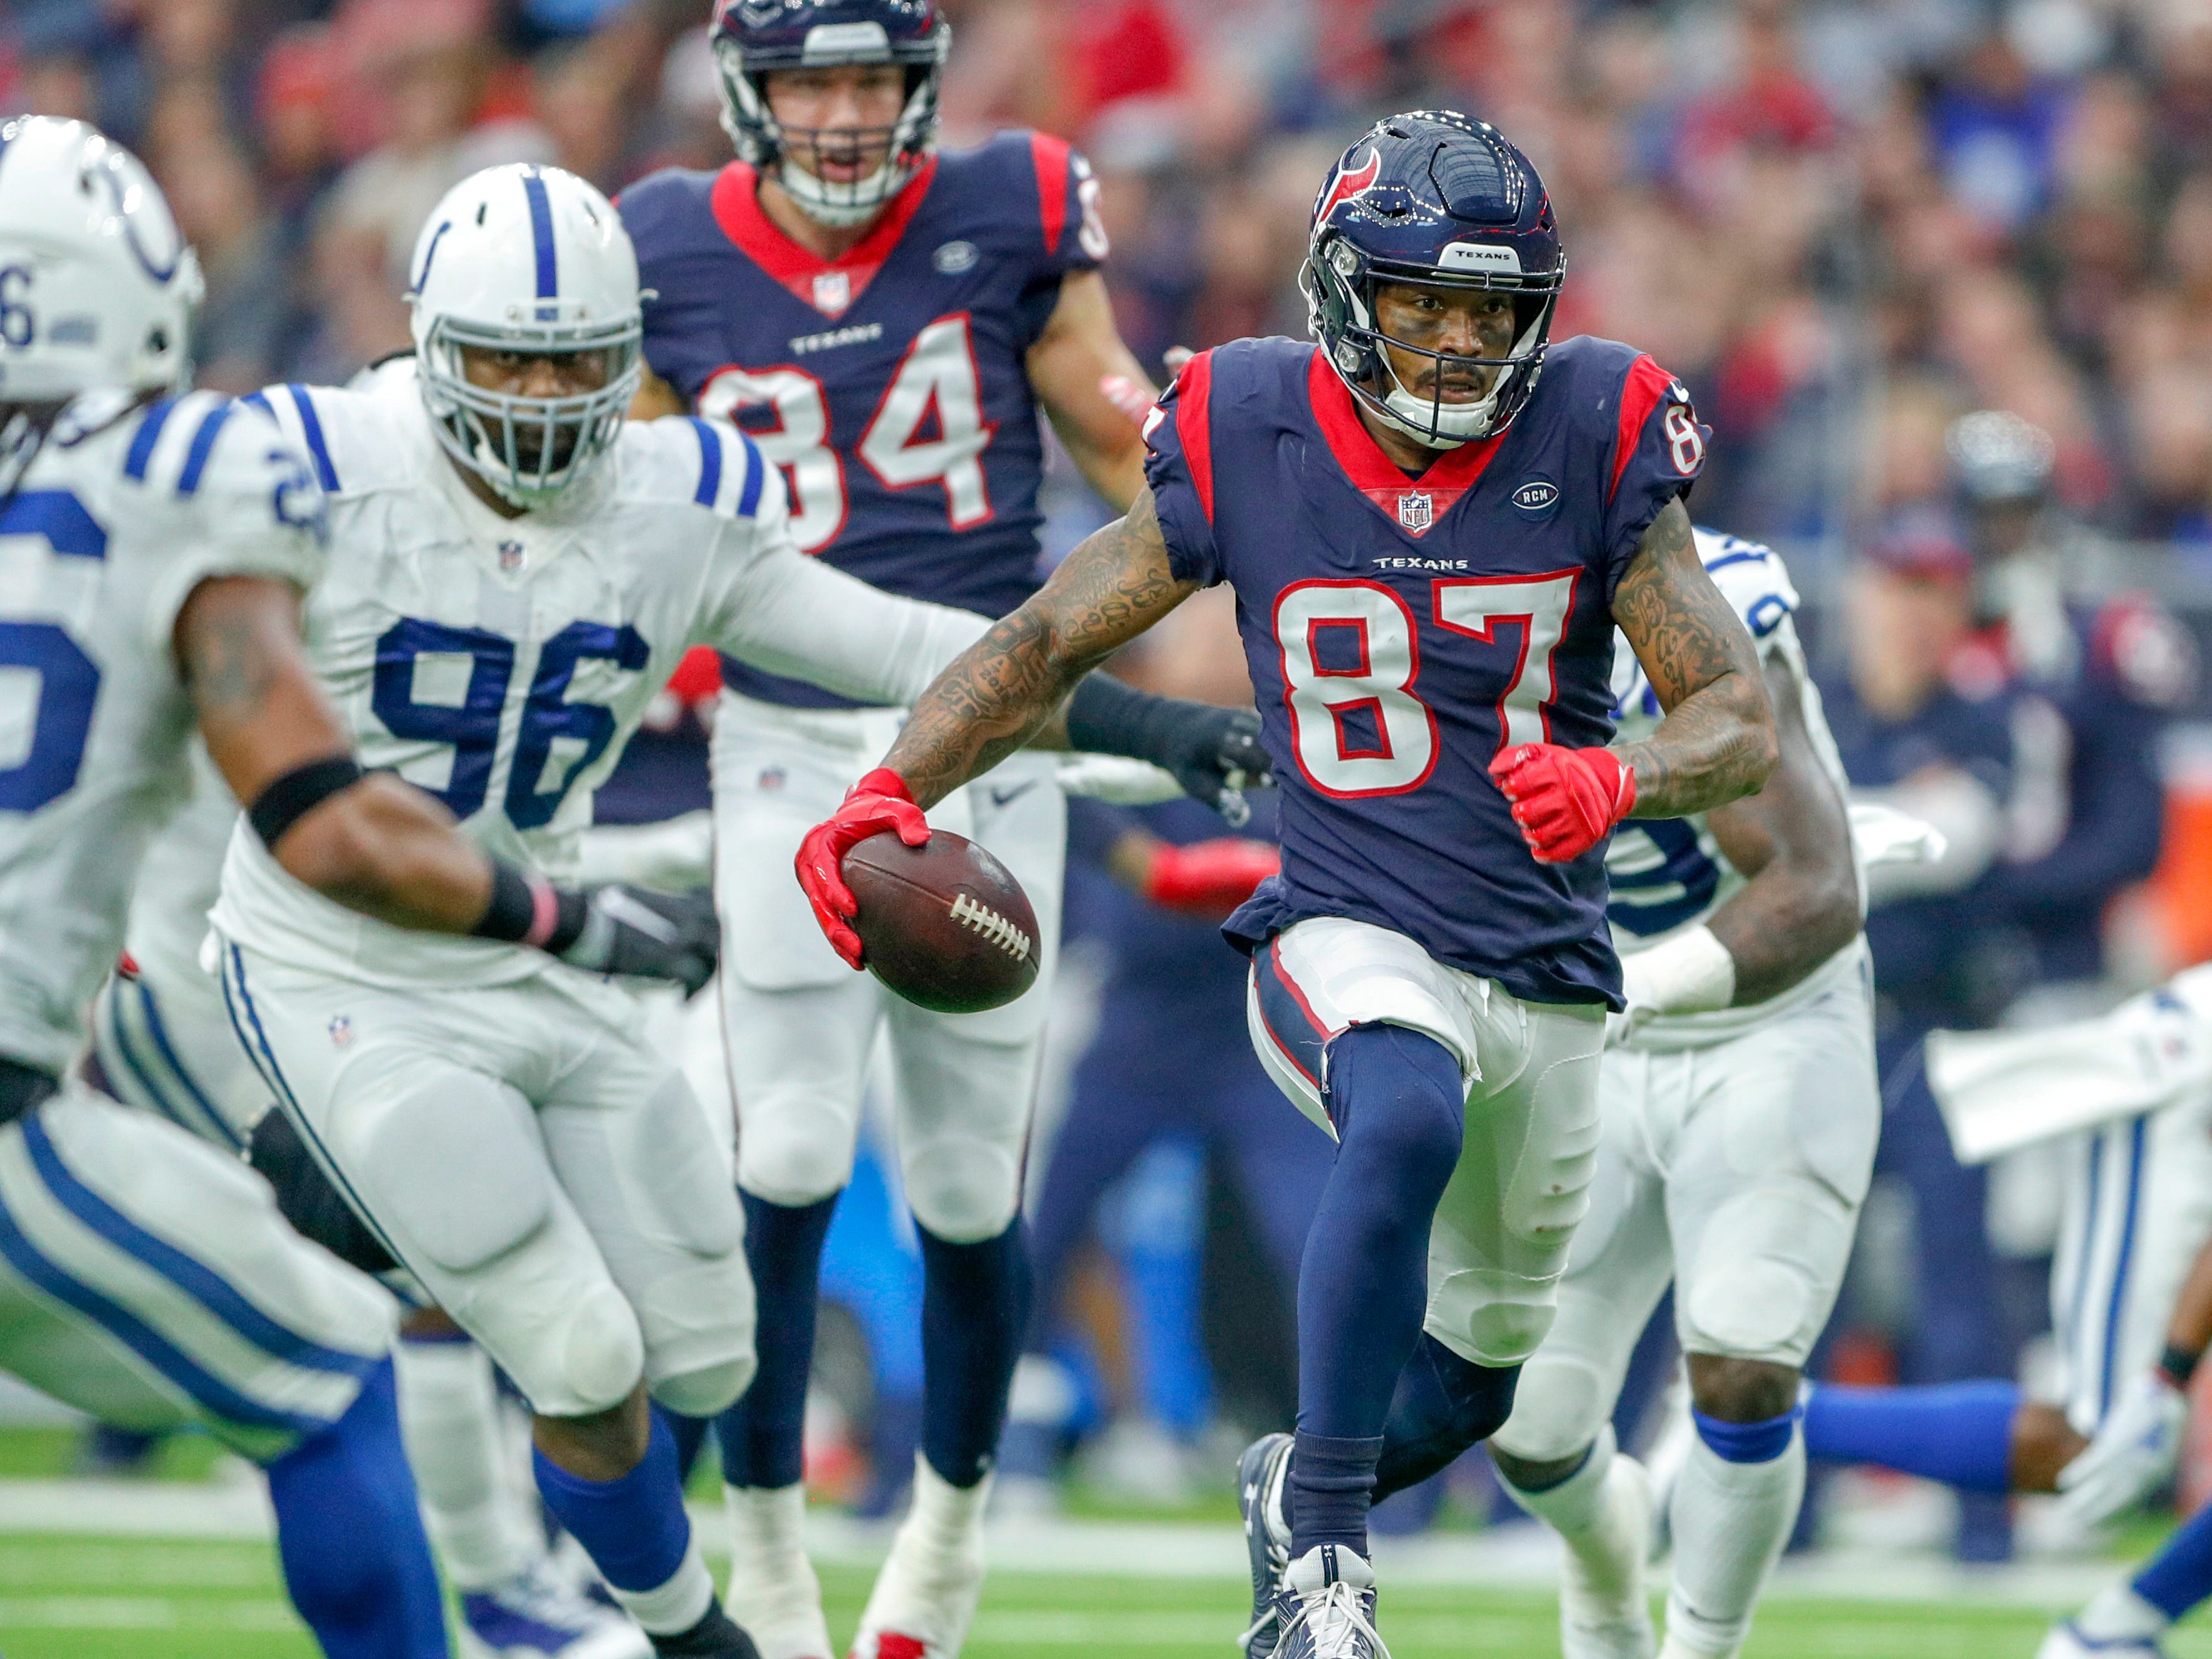 Houston Texans wide receiver Demaryius Thomas (87) takes a pass downfield against the Indianapolis Colts defense in the third quarter at NRG Stadium in Houston on Sunday, Dec. 9, 2018.